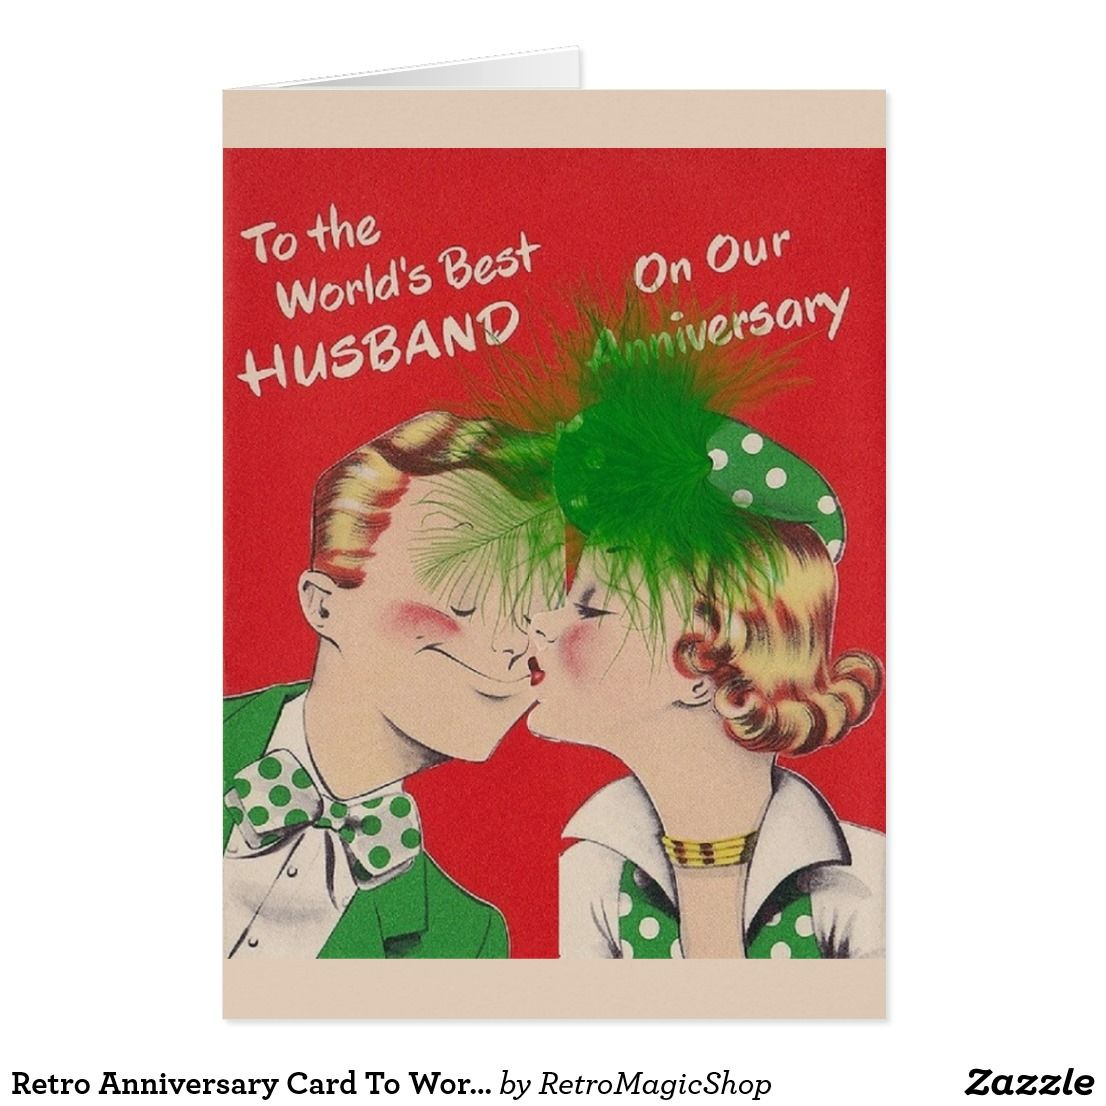 Retro Anniversary Card To World S Best Husband Zazzle Com In 2021 Anniversary Greeting Cards Anniversary Cards Anniversary